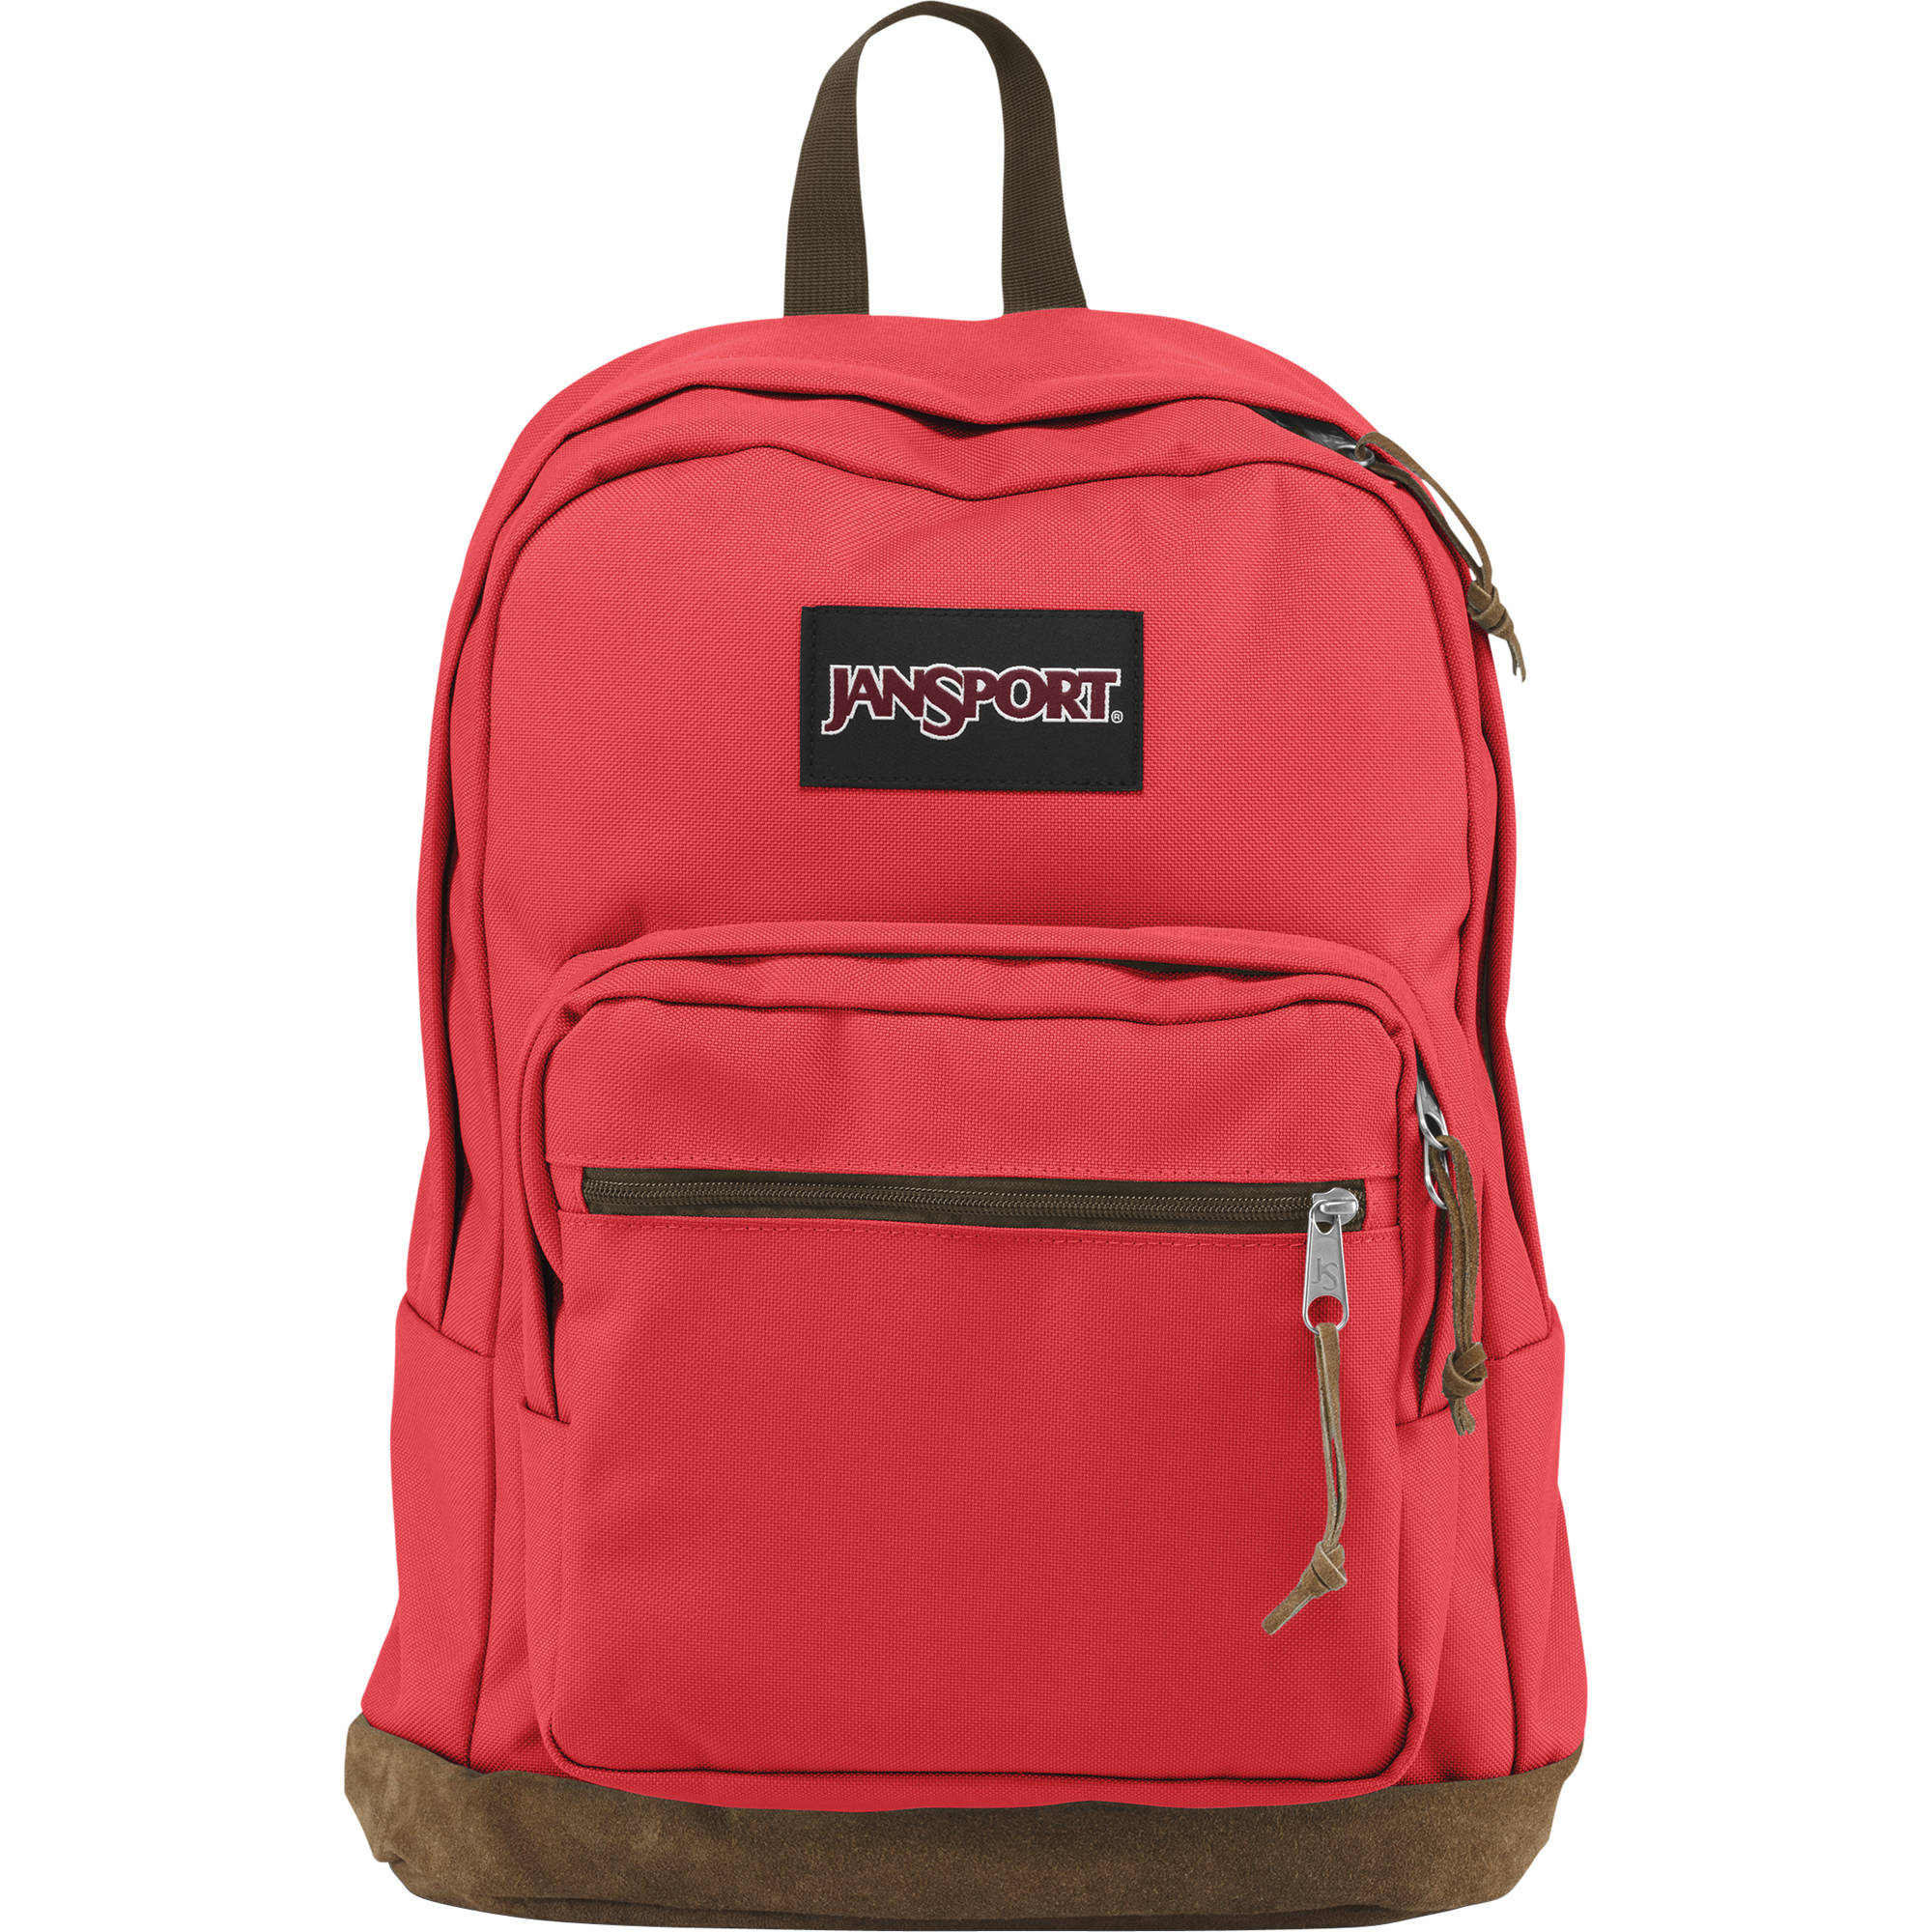 JanSport TYP7008 Replacement for JanSport TYP72C9 B&H Photo